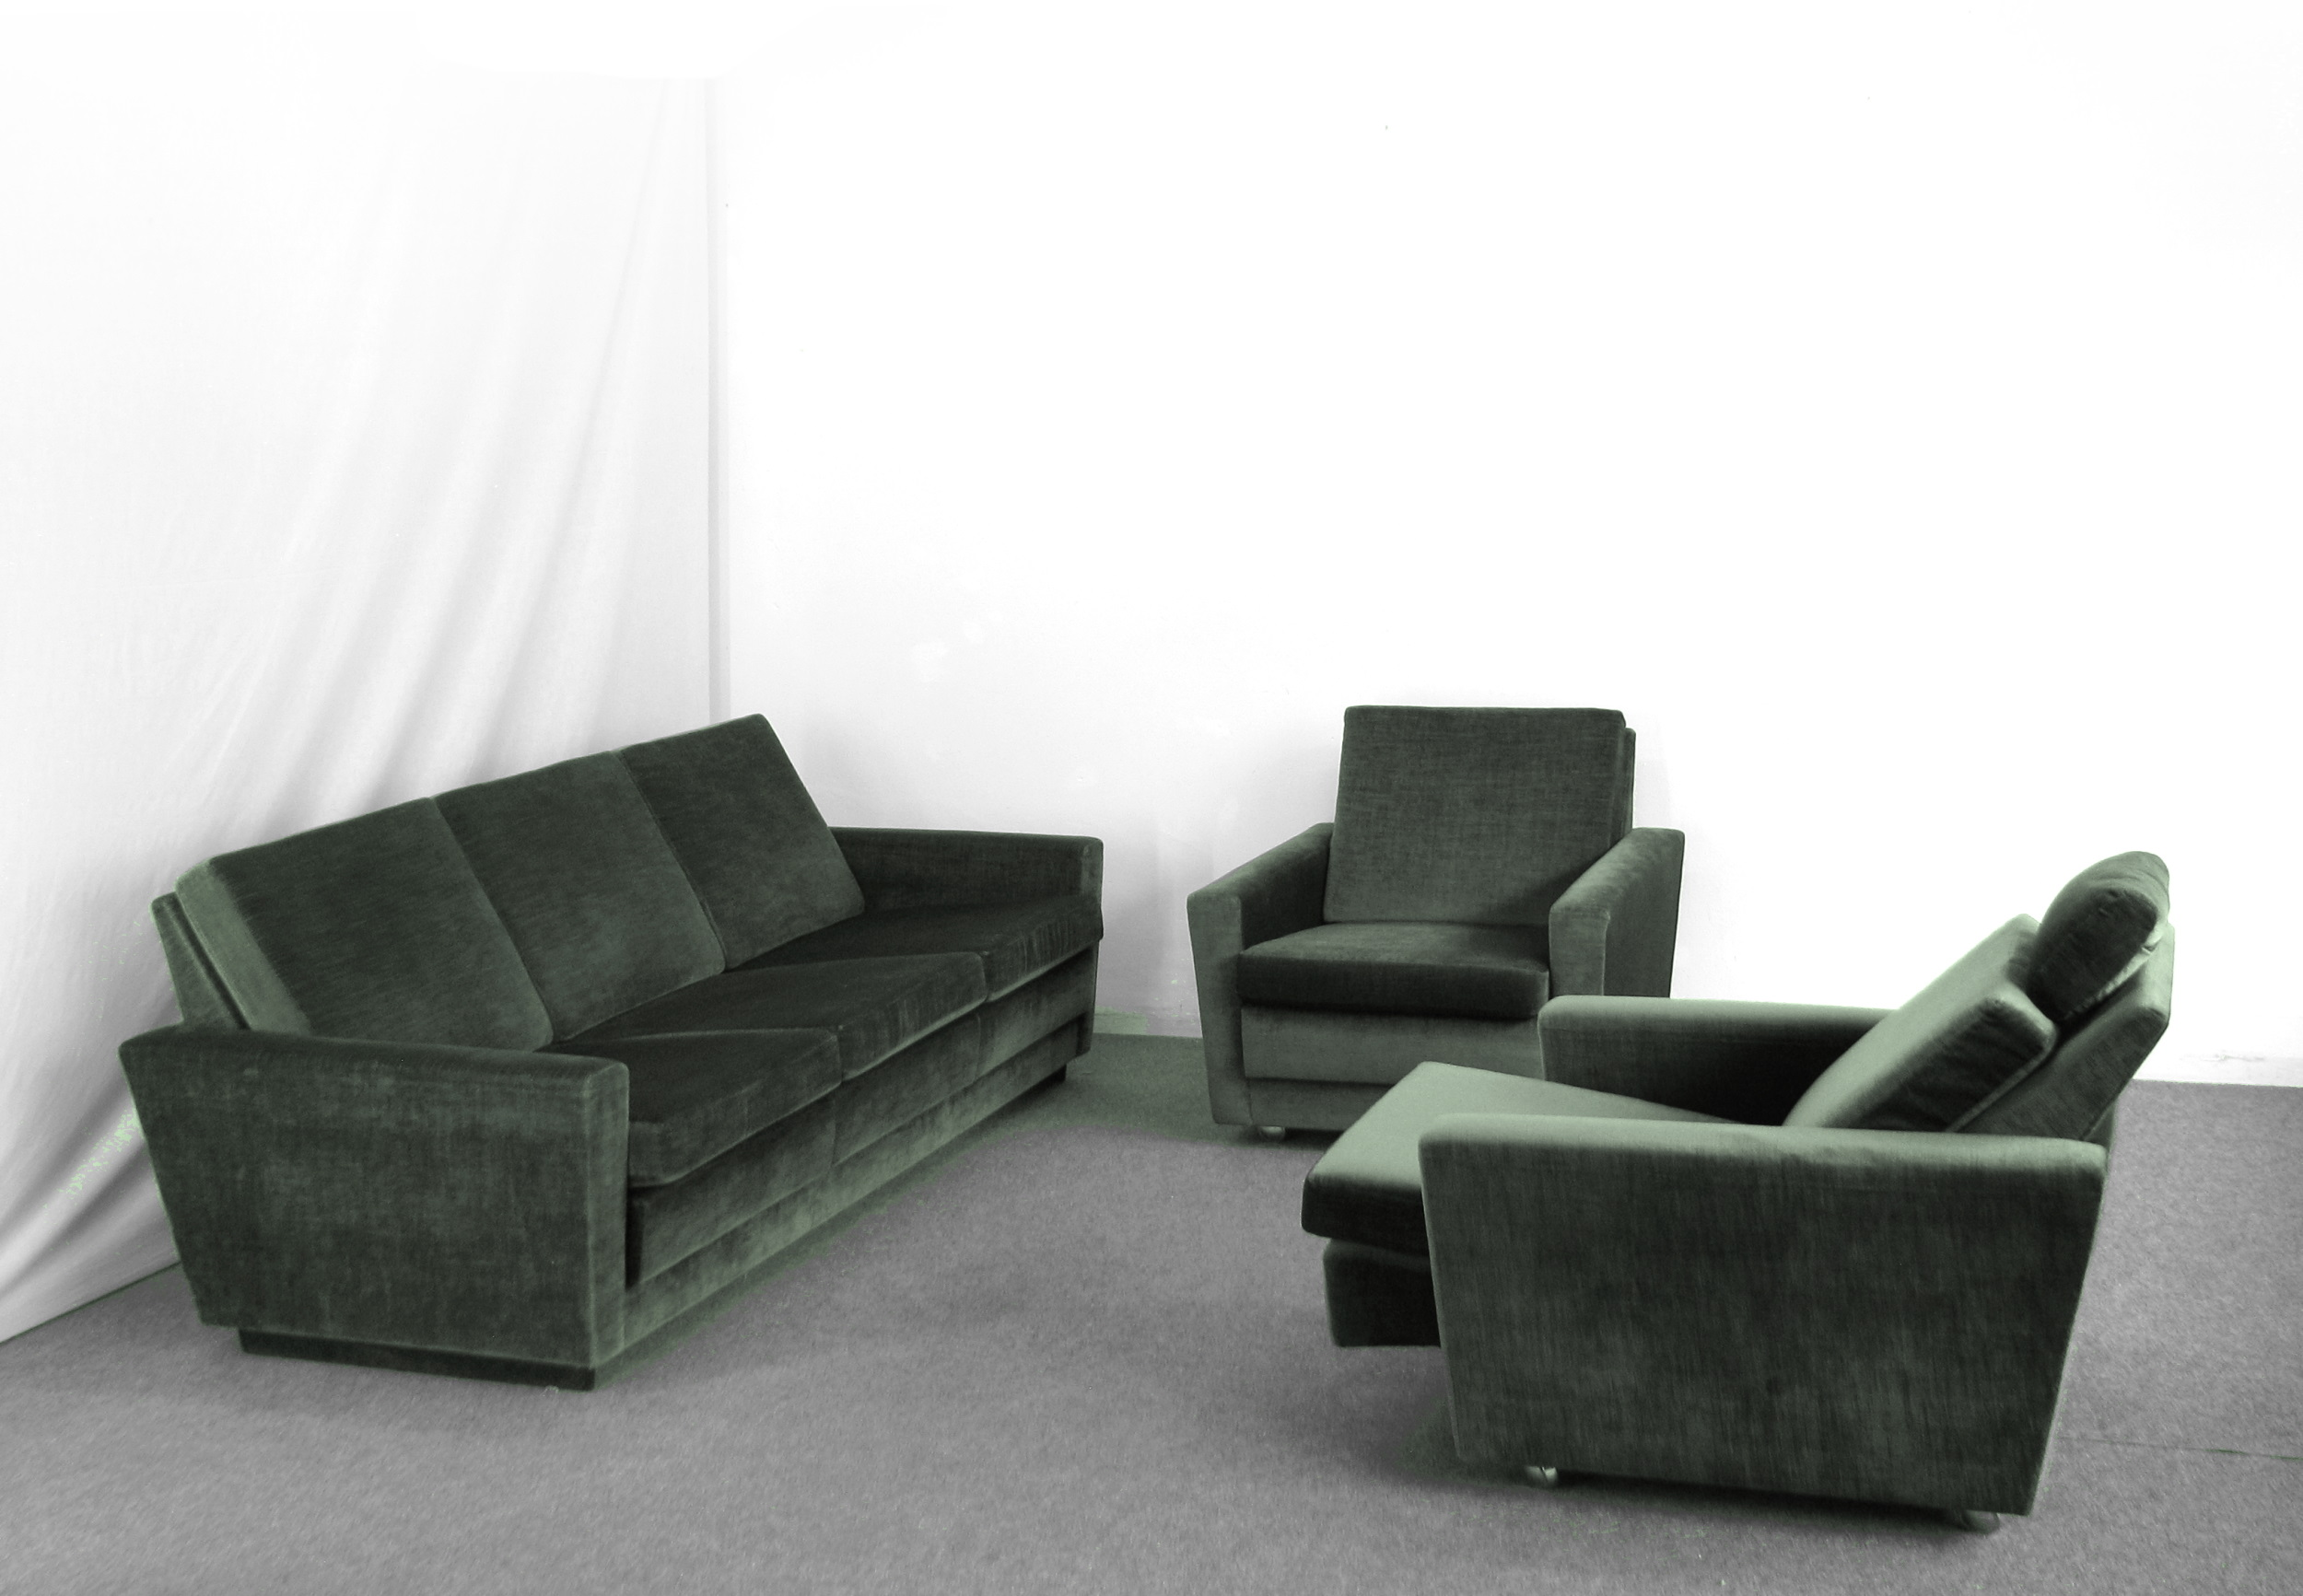 couchgruppe clubcouch 2 sessel mit relaxfunktion cordsamt top zustand 70er ebay. Black Bedroom Furniture Sets. Home Design Ideas